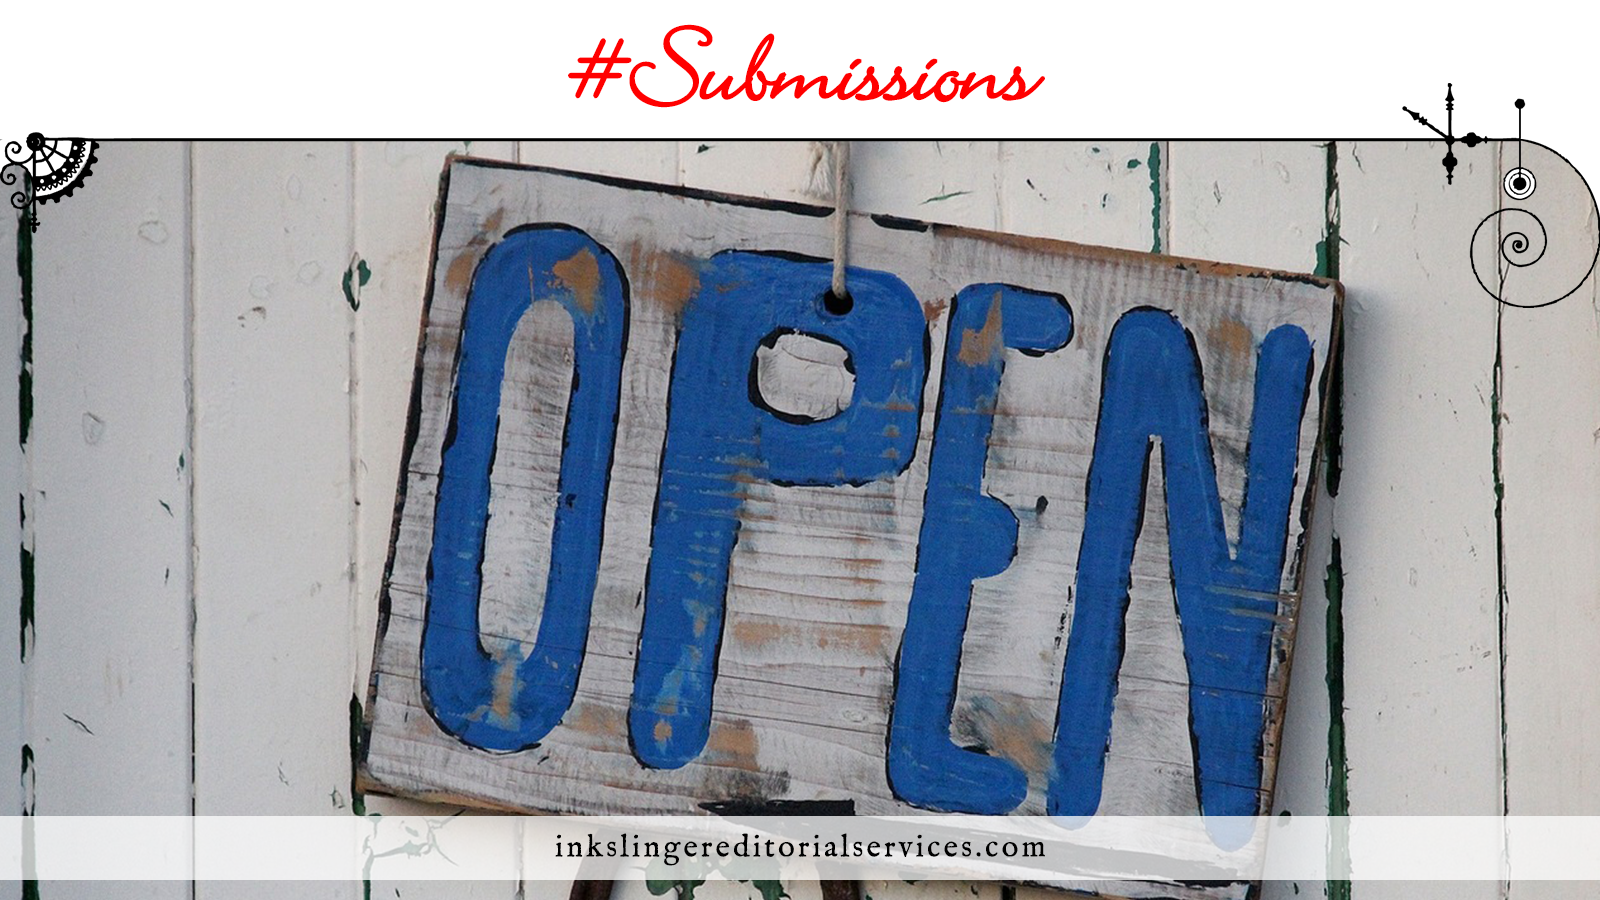 #Submissions: An open sign on a fence, both faded and worn.